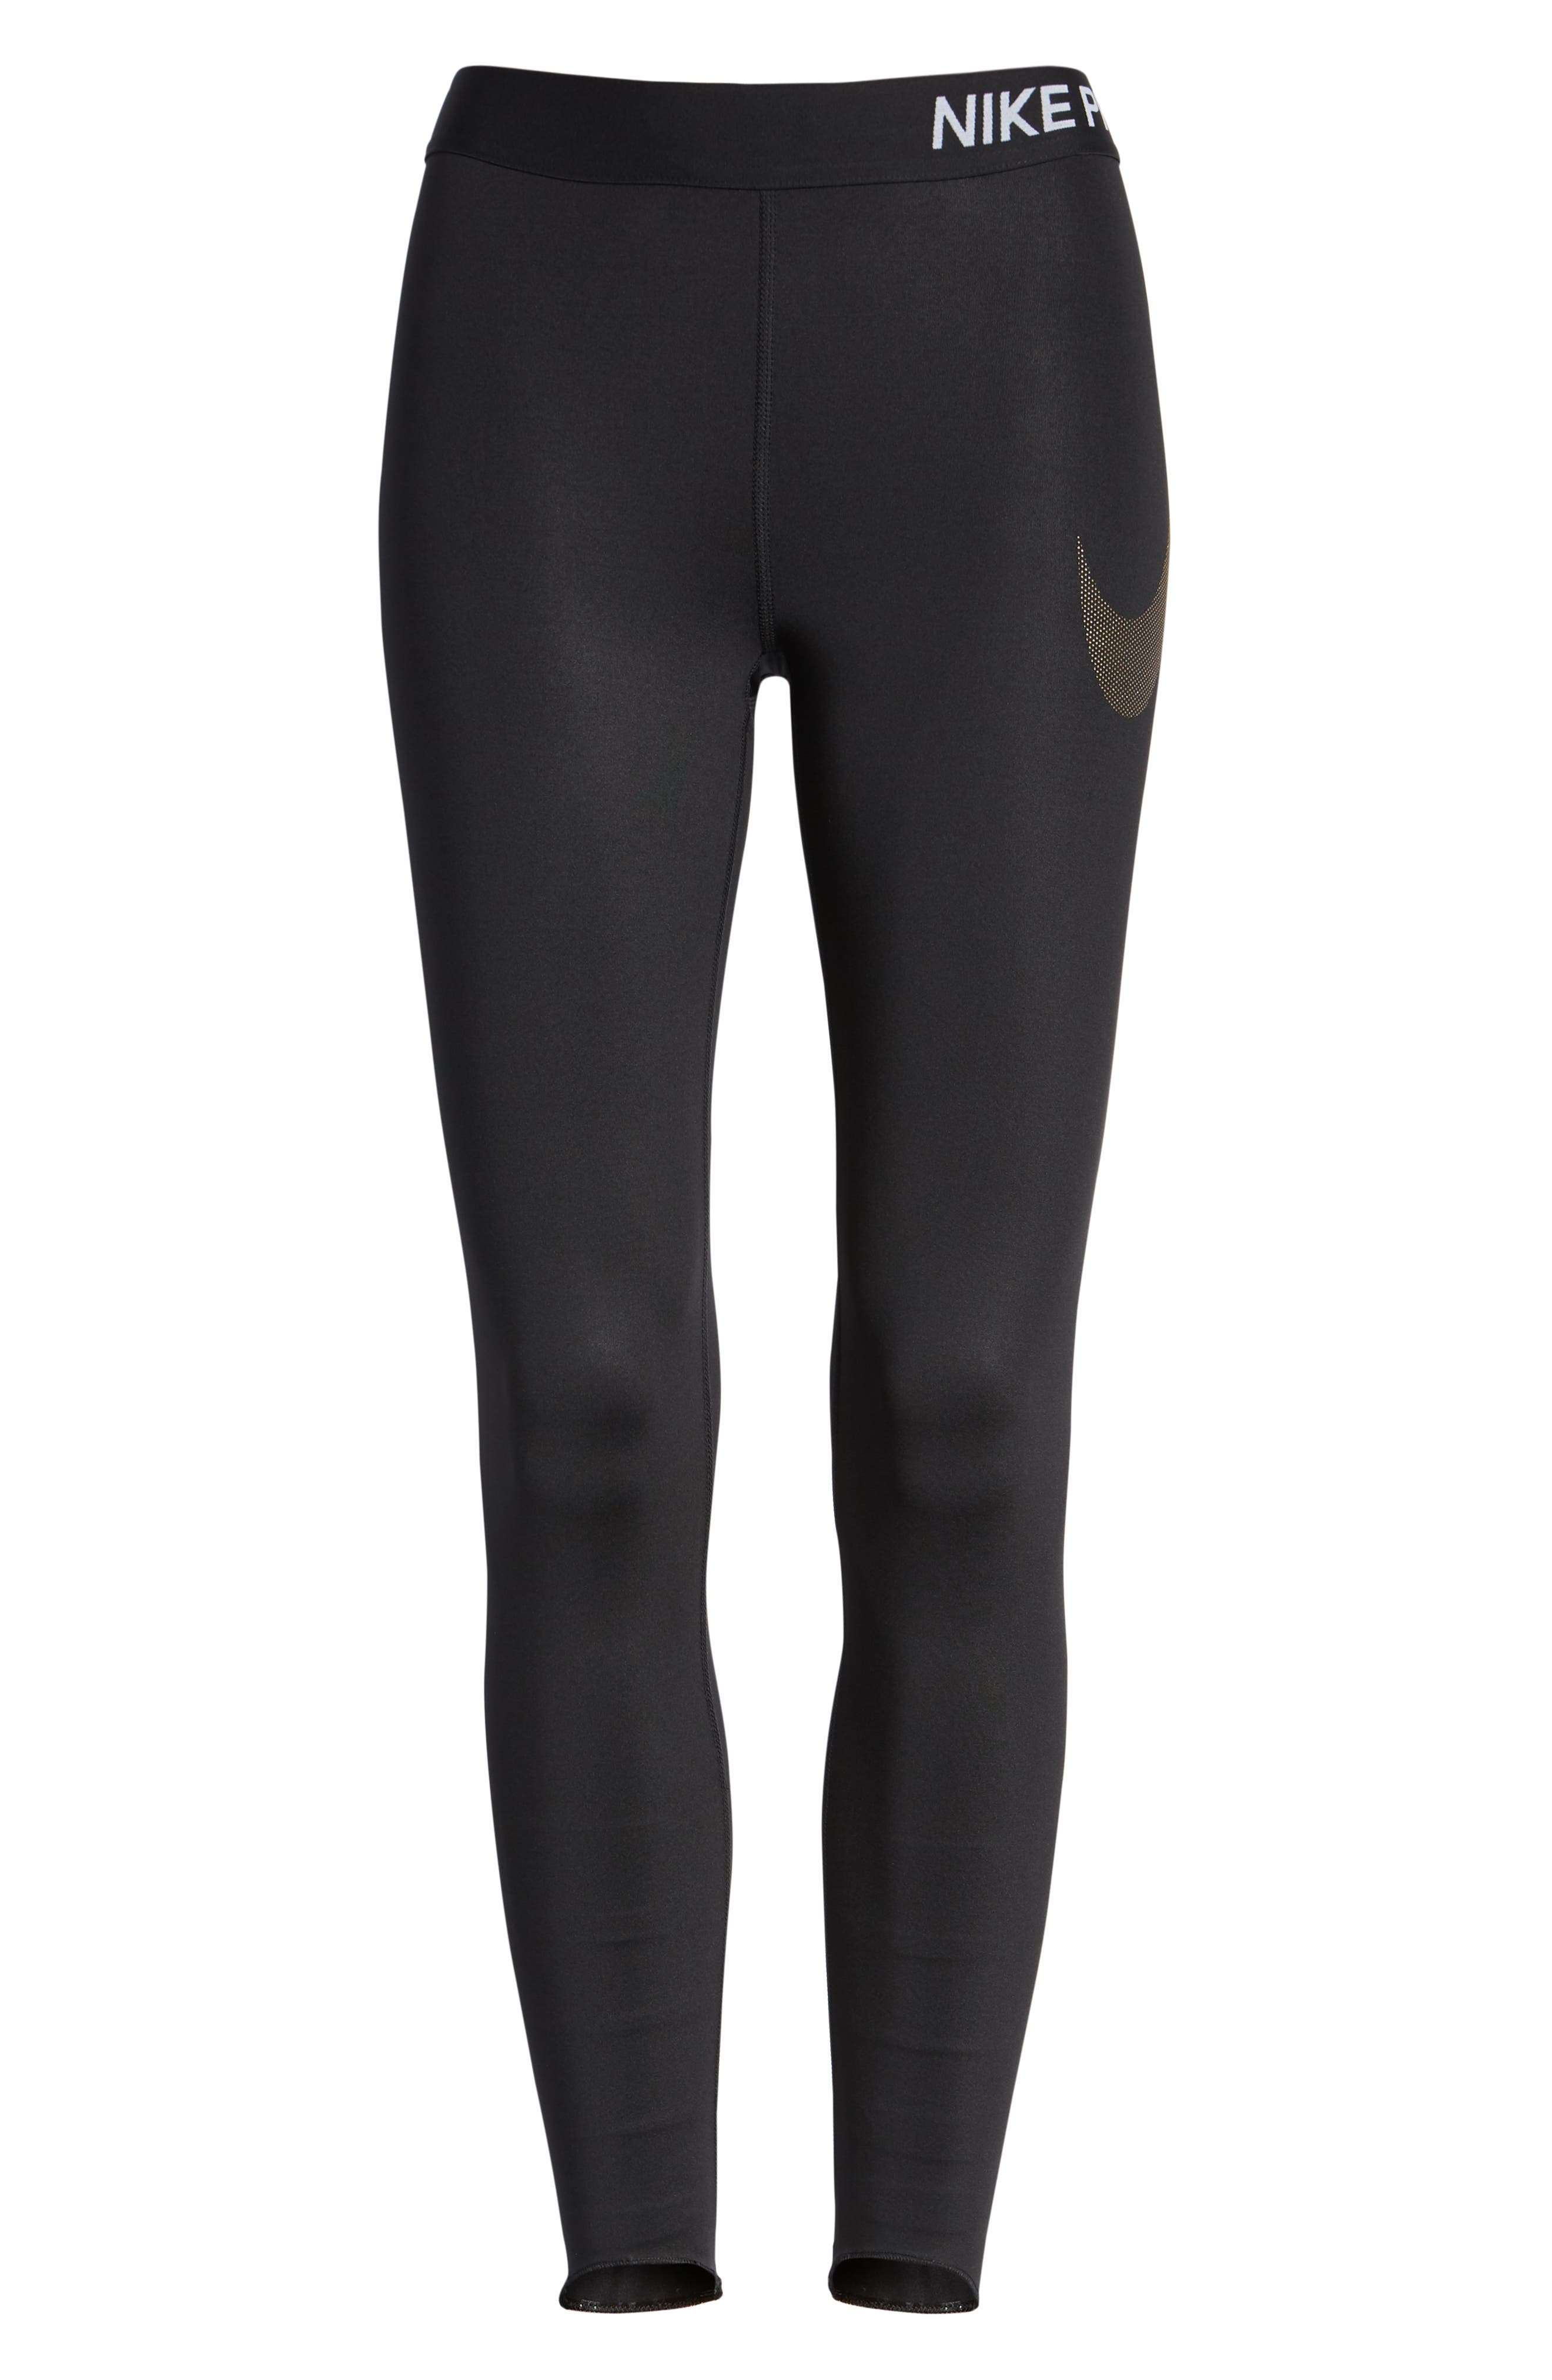 Pro Embossed Logo 7/8 Tights,                             Main thumbnail 1, color,                             010